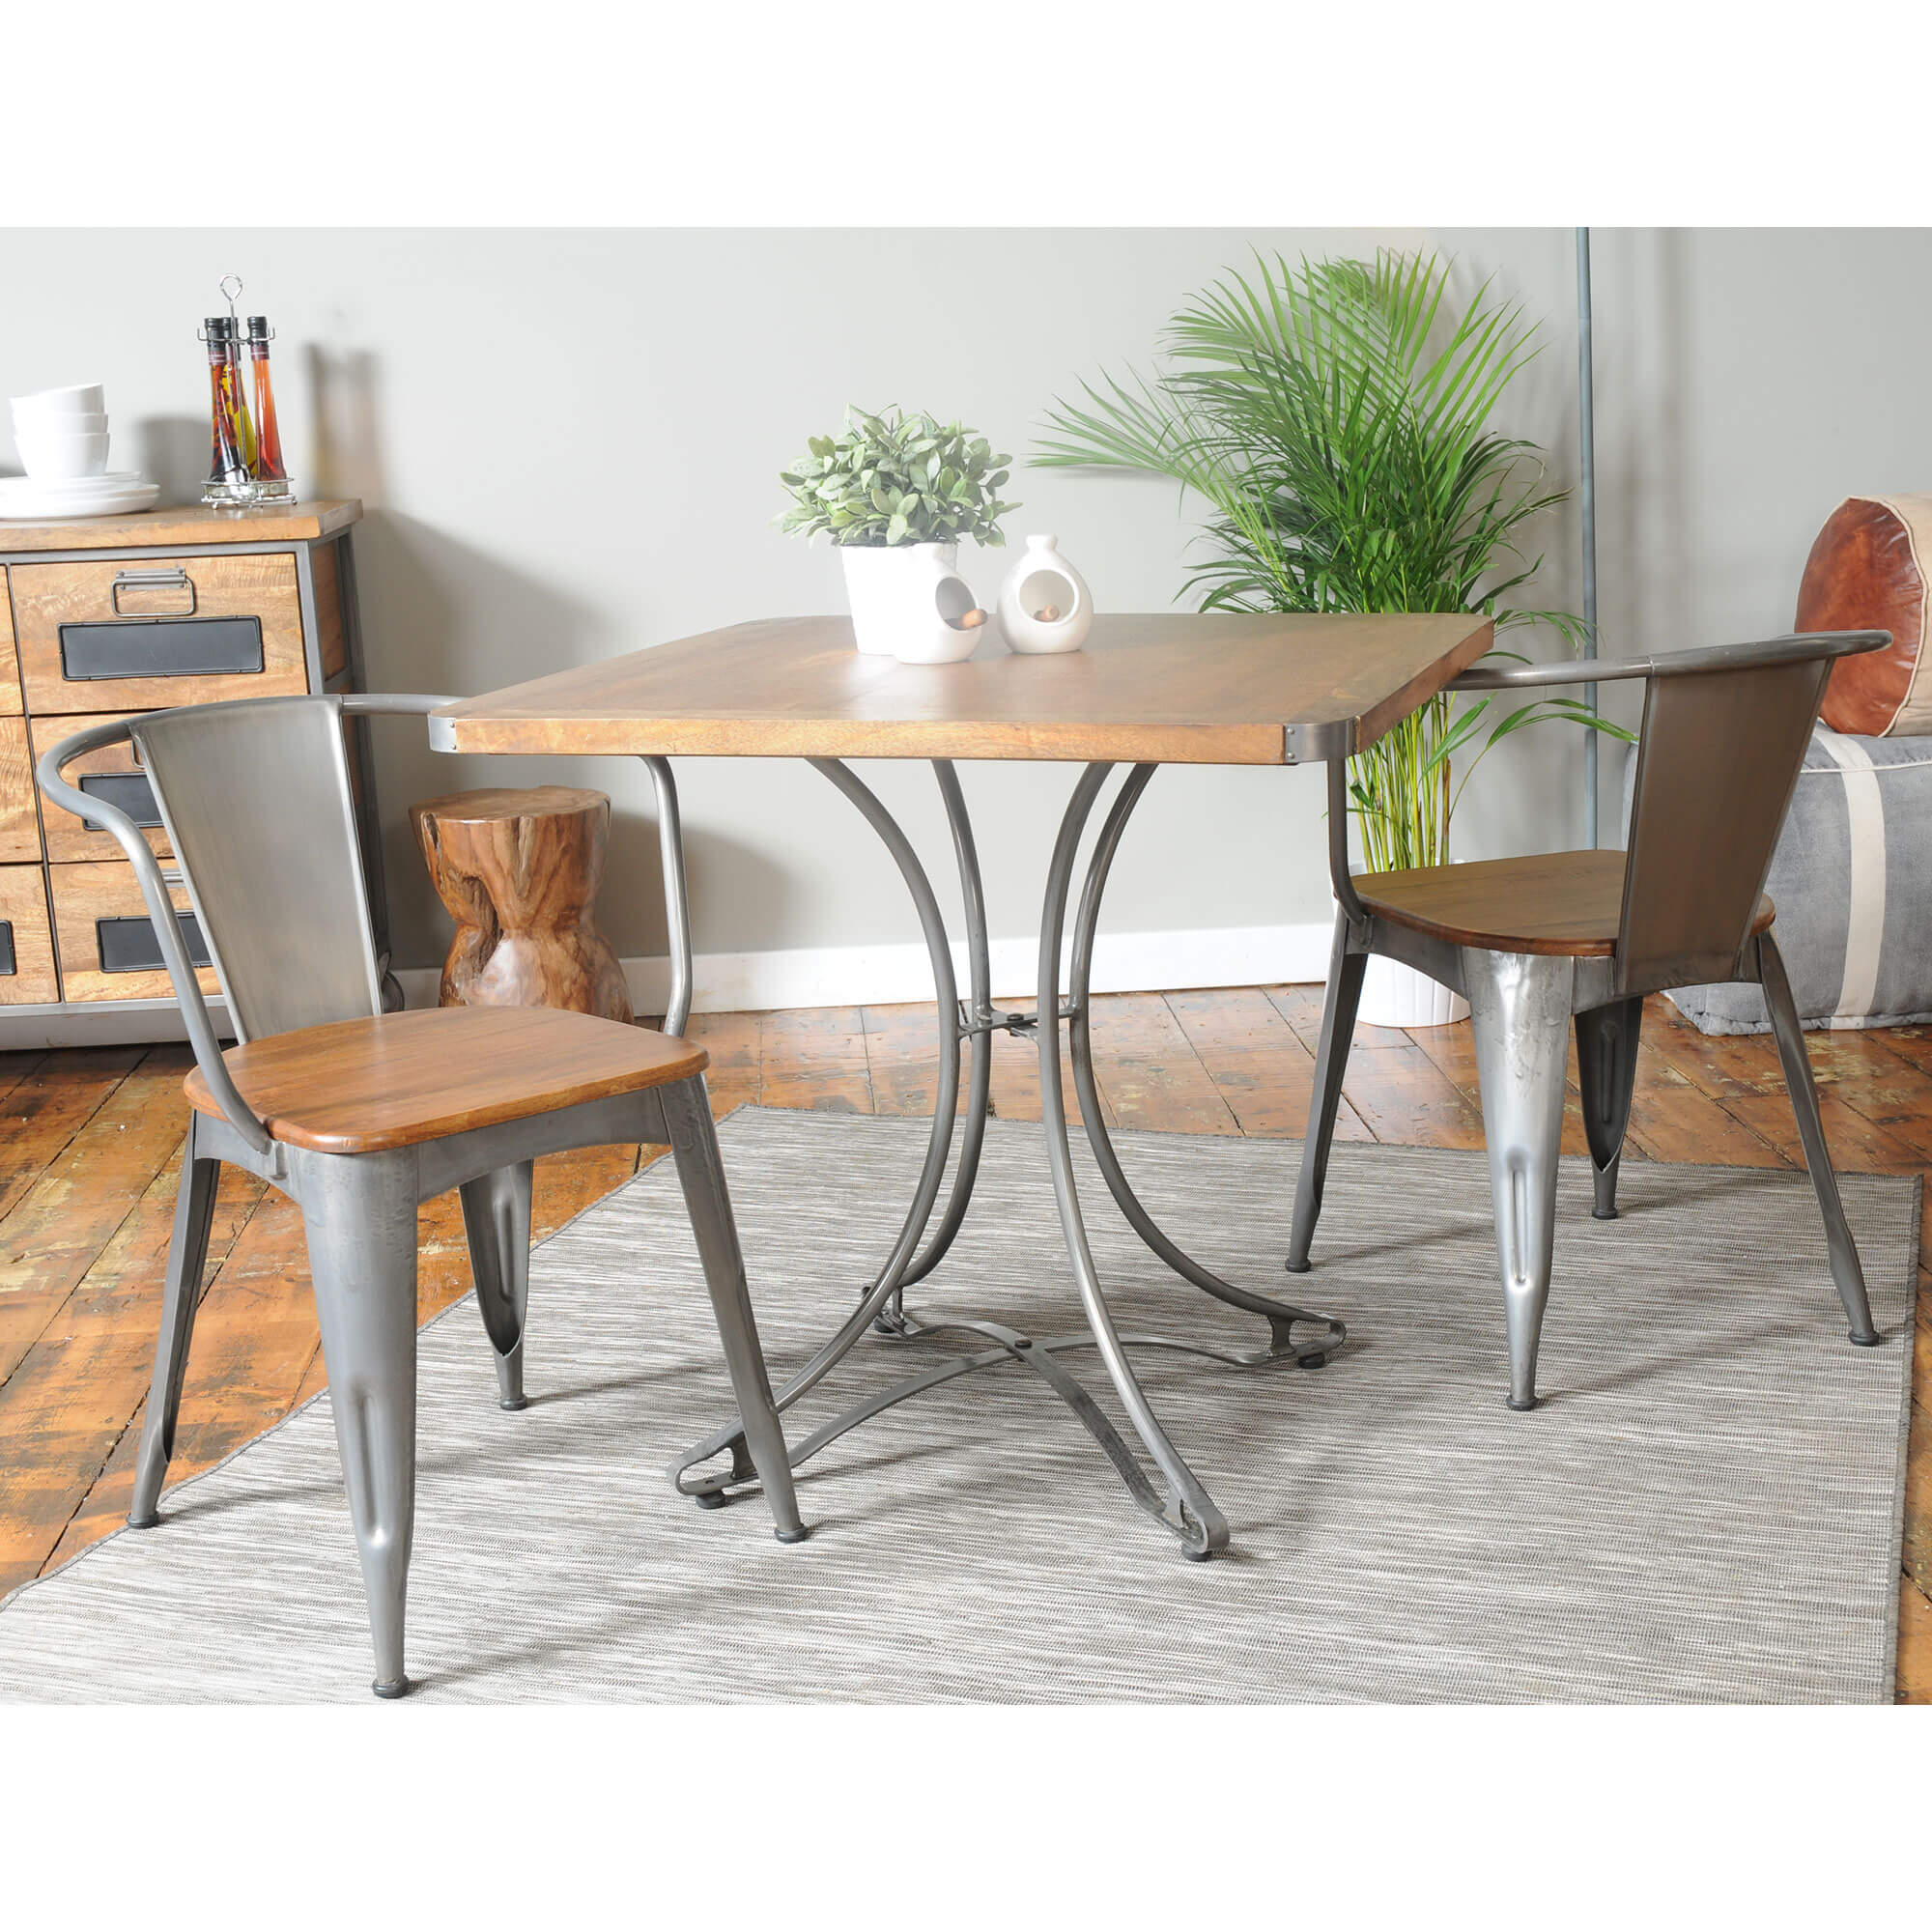 Urban Square Cafe Table x4 Chairs (80x80) | Furniture Supplies UK